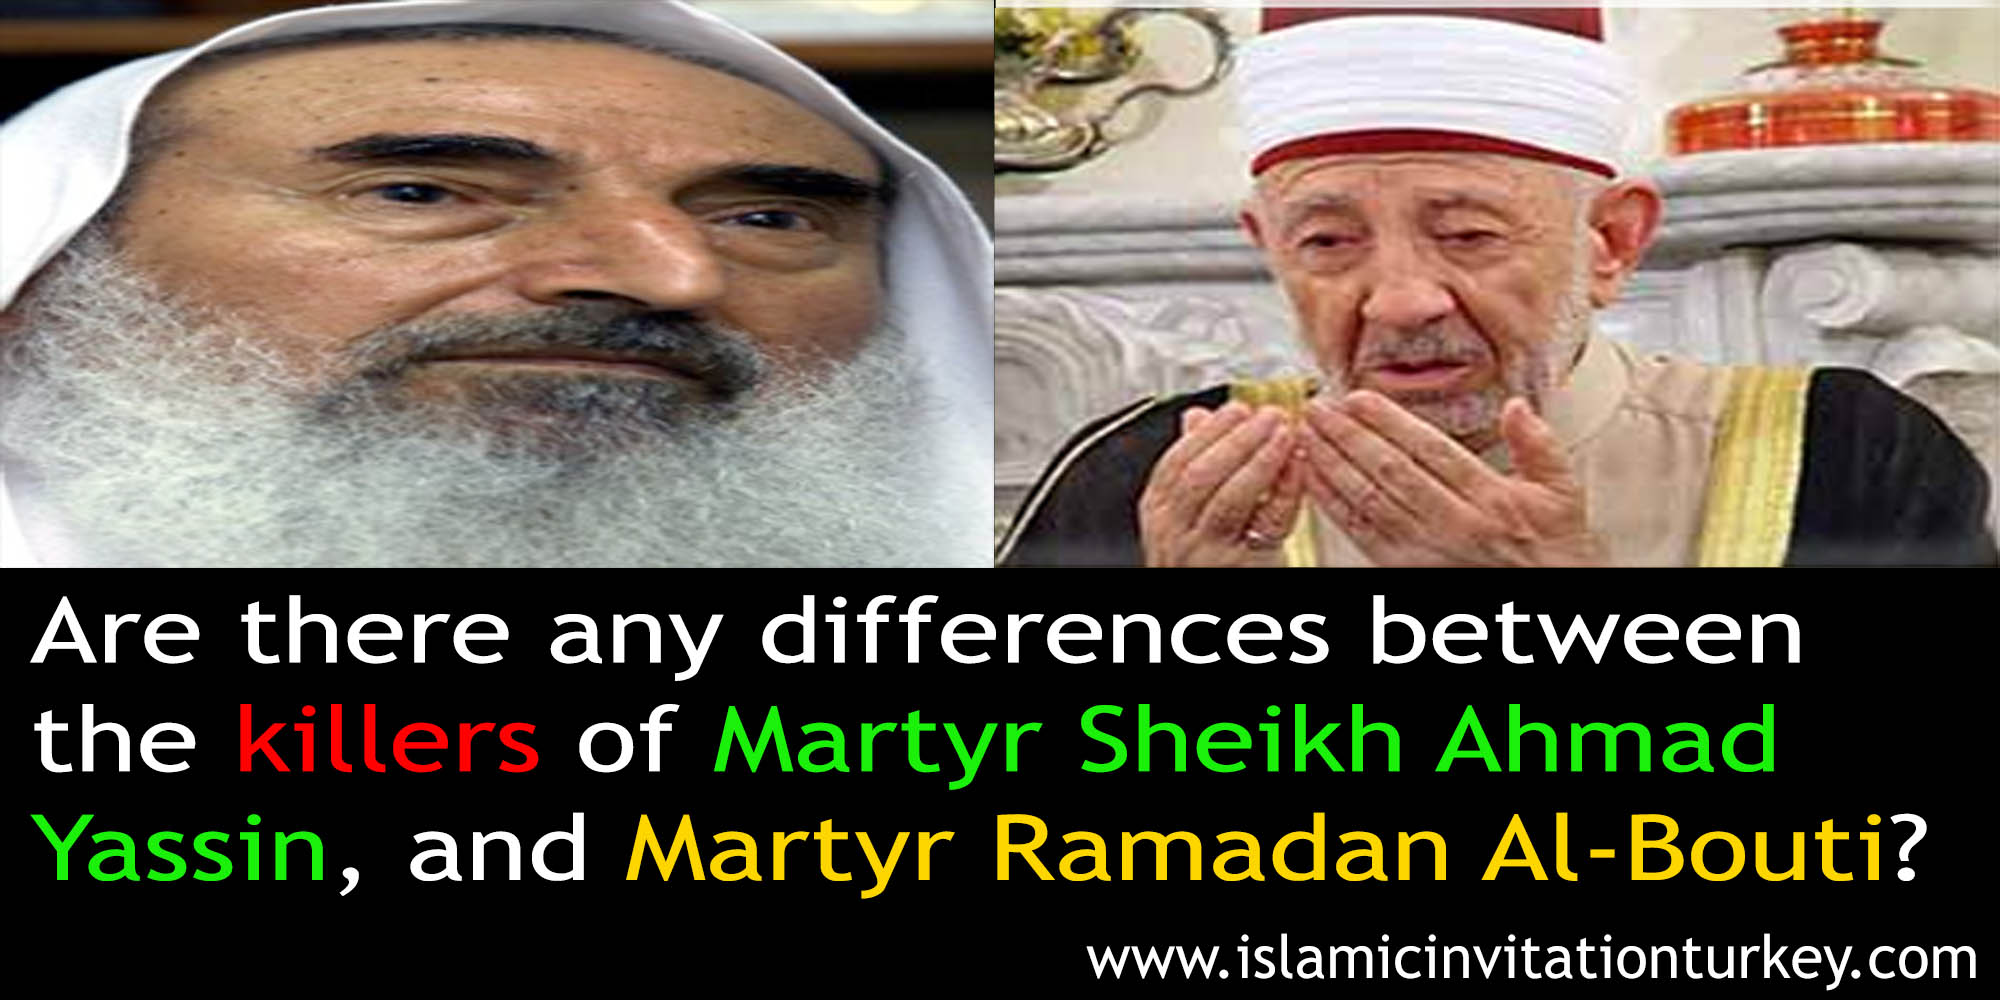 Photo of The killers of Martyr Sheikh Ahmad Yassin and Ramadan Al-Bouti are the same